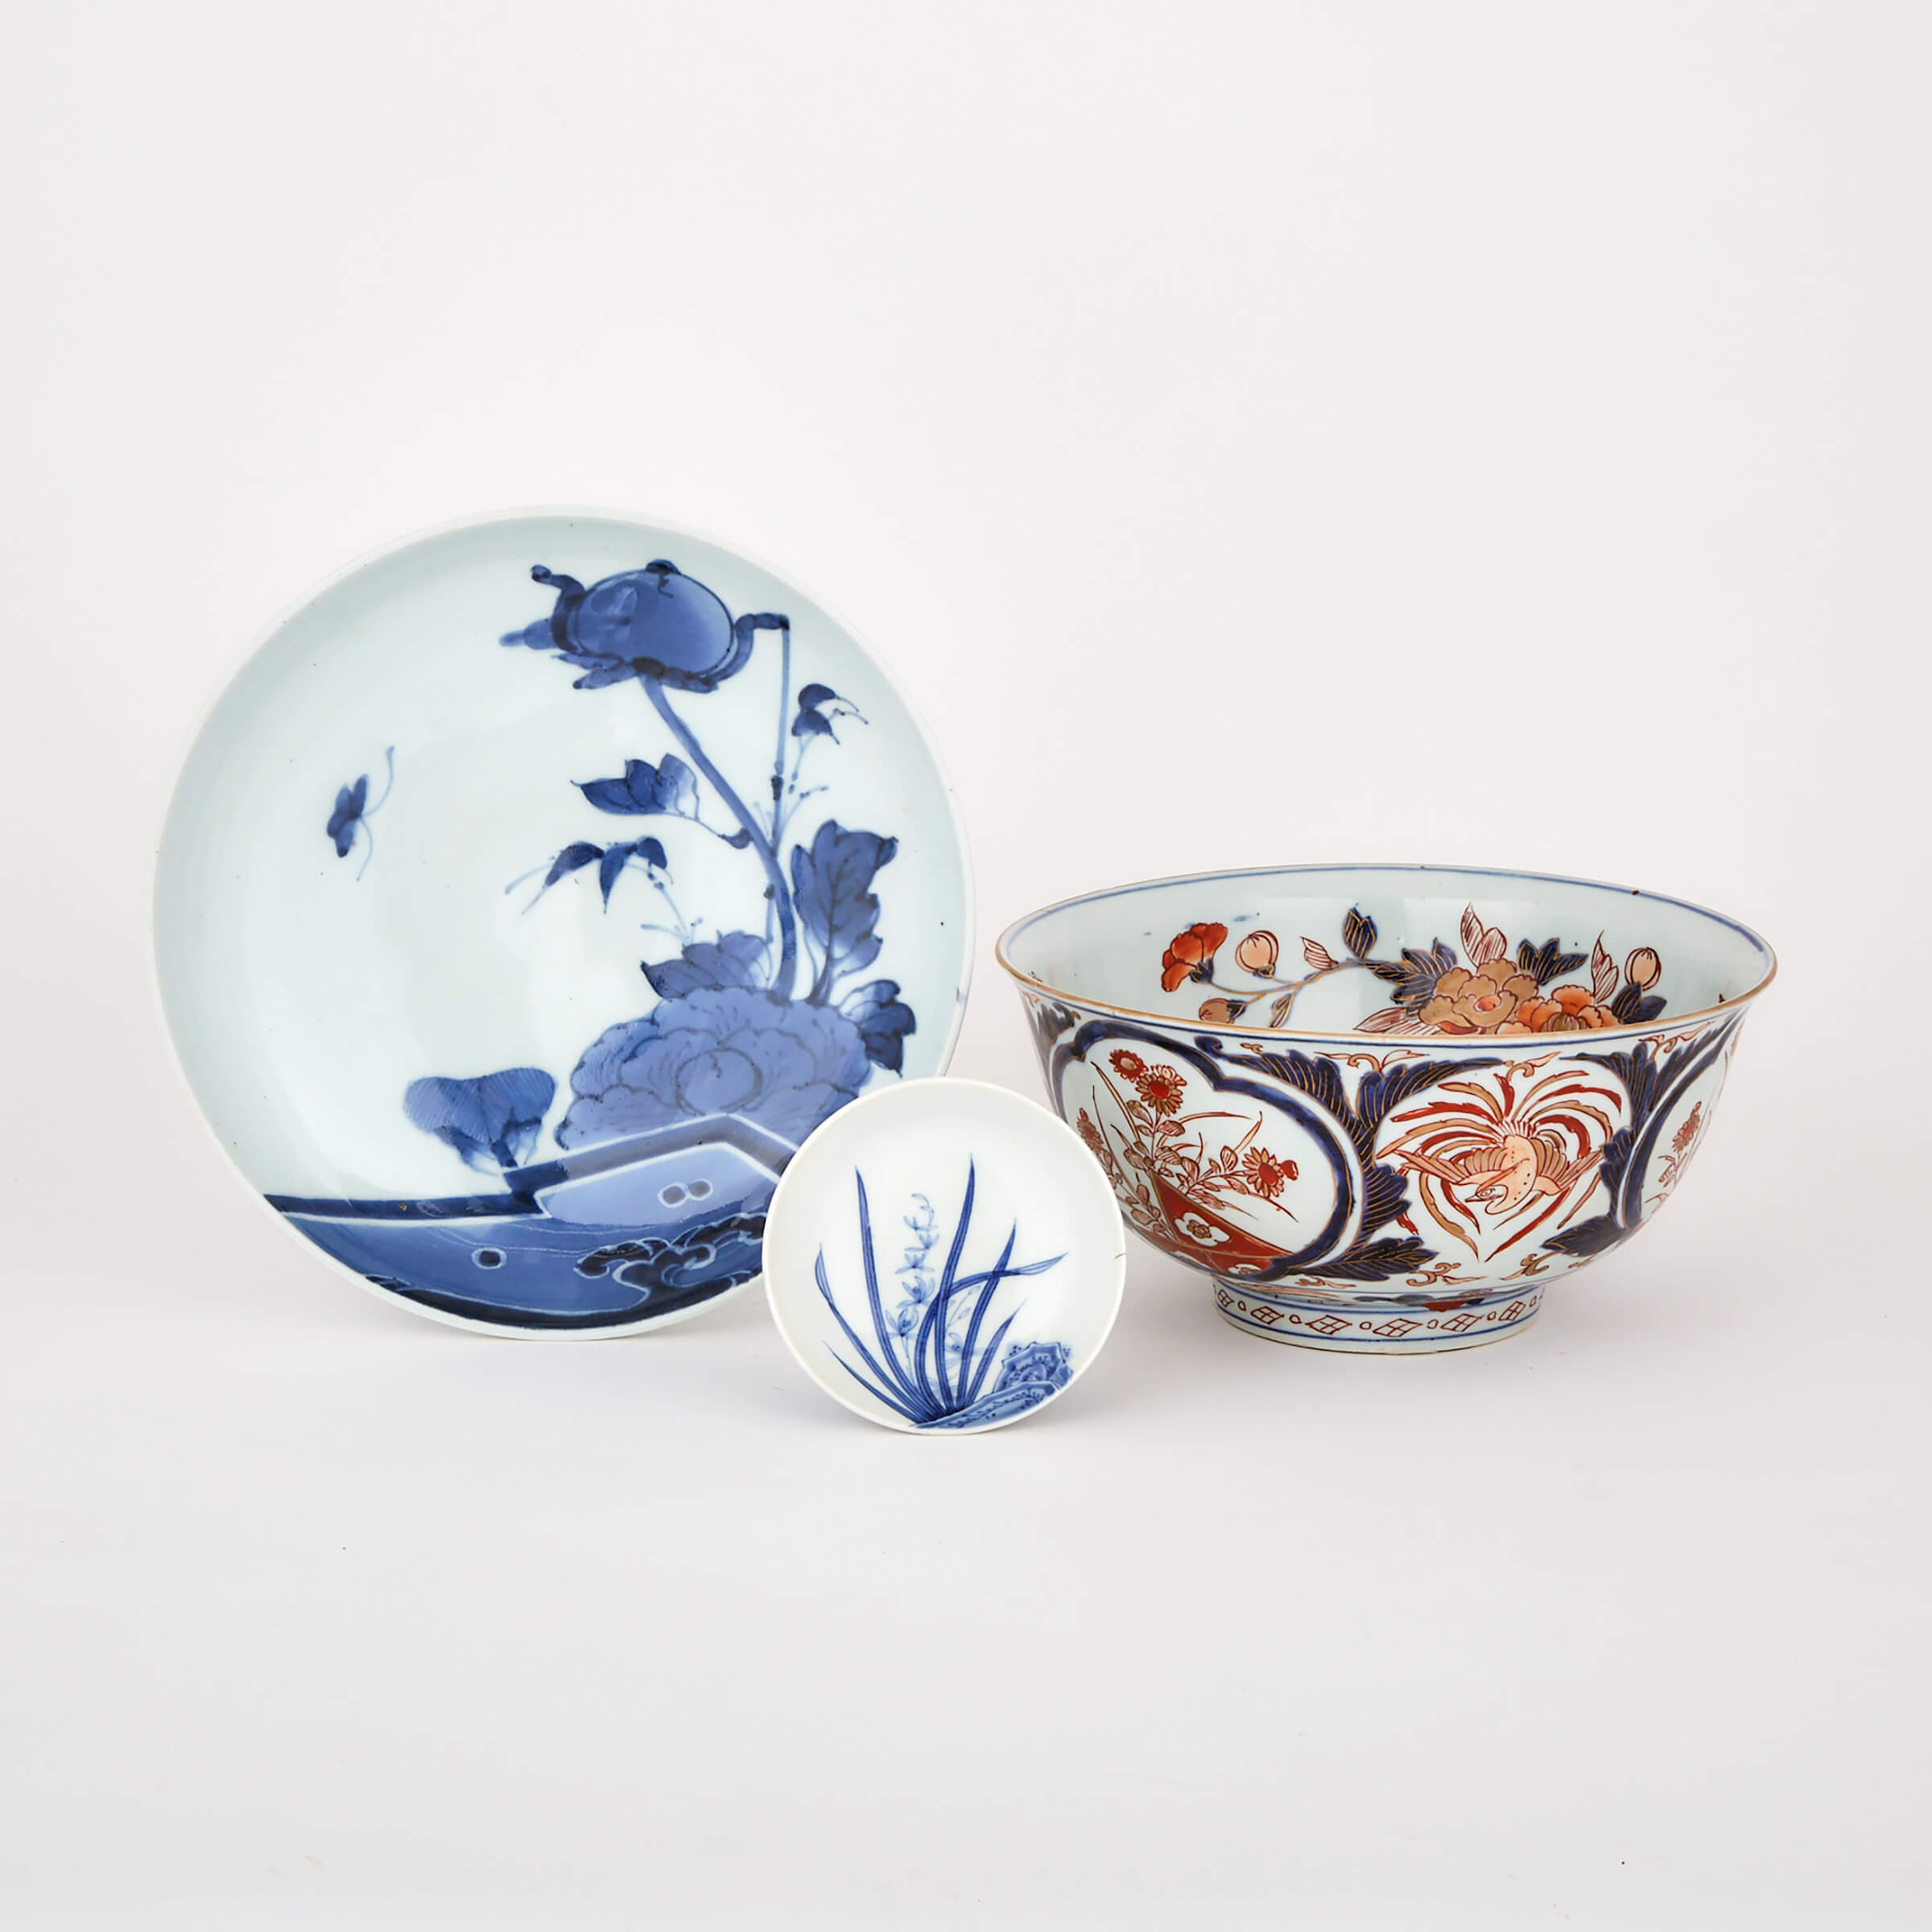 A Group of Three Japanese Porcelain Wares, 19th Century